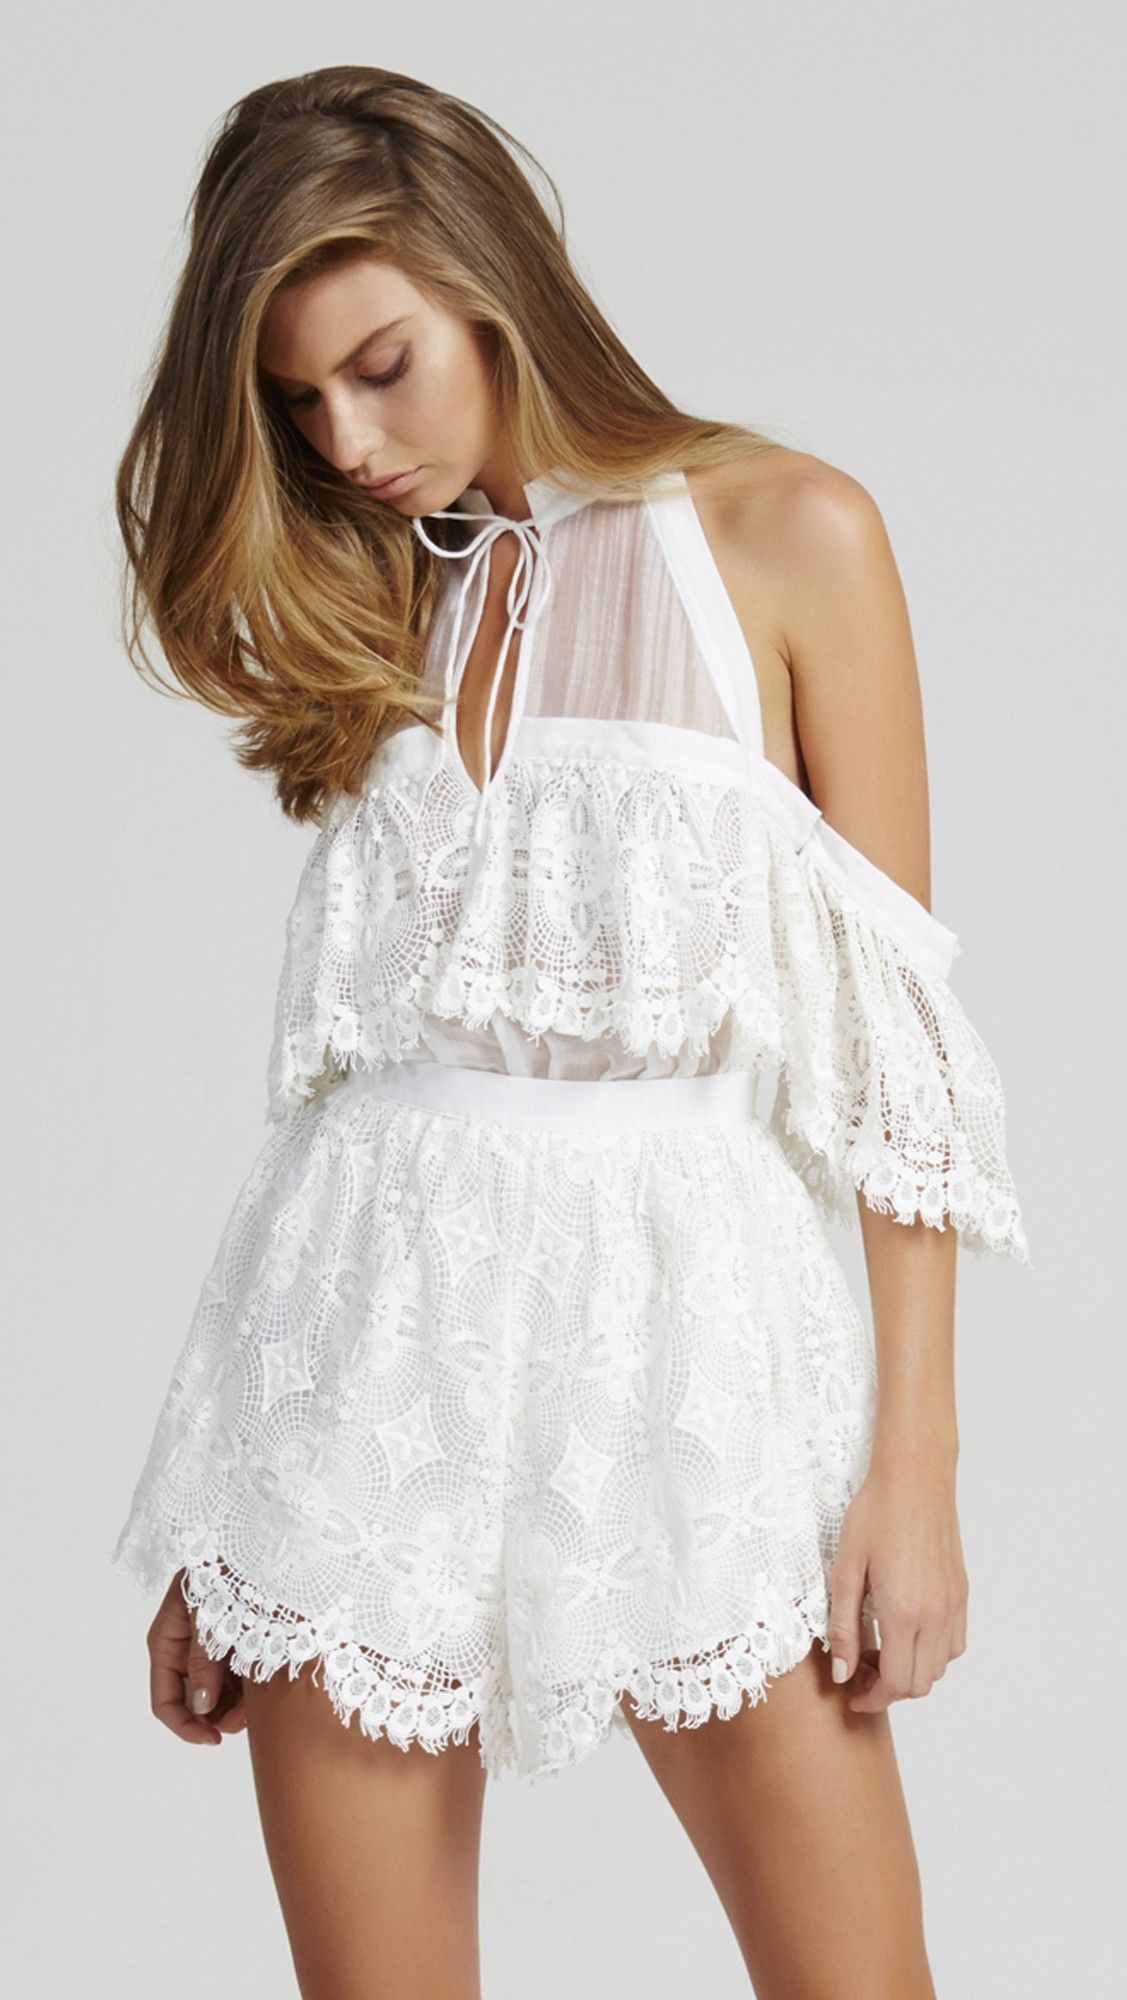 59981eb332 alice McCALL Better Be Good To Me Playsuit Romper Seashell White ...